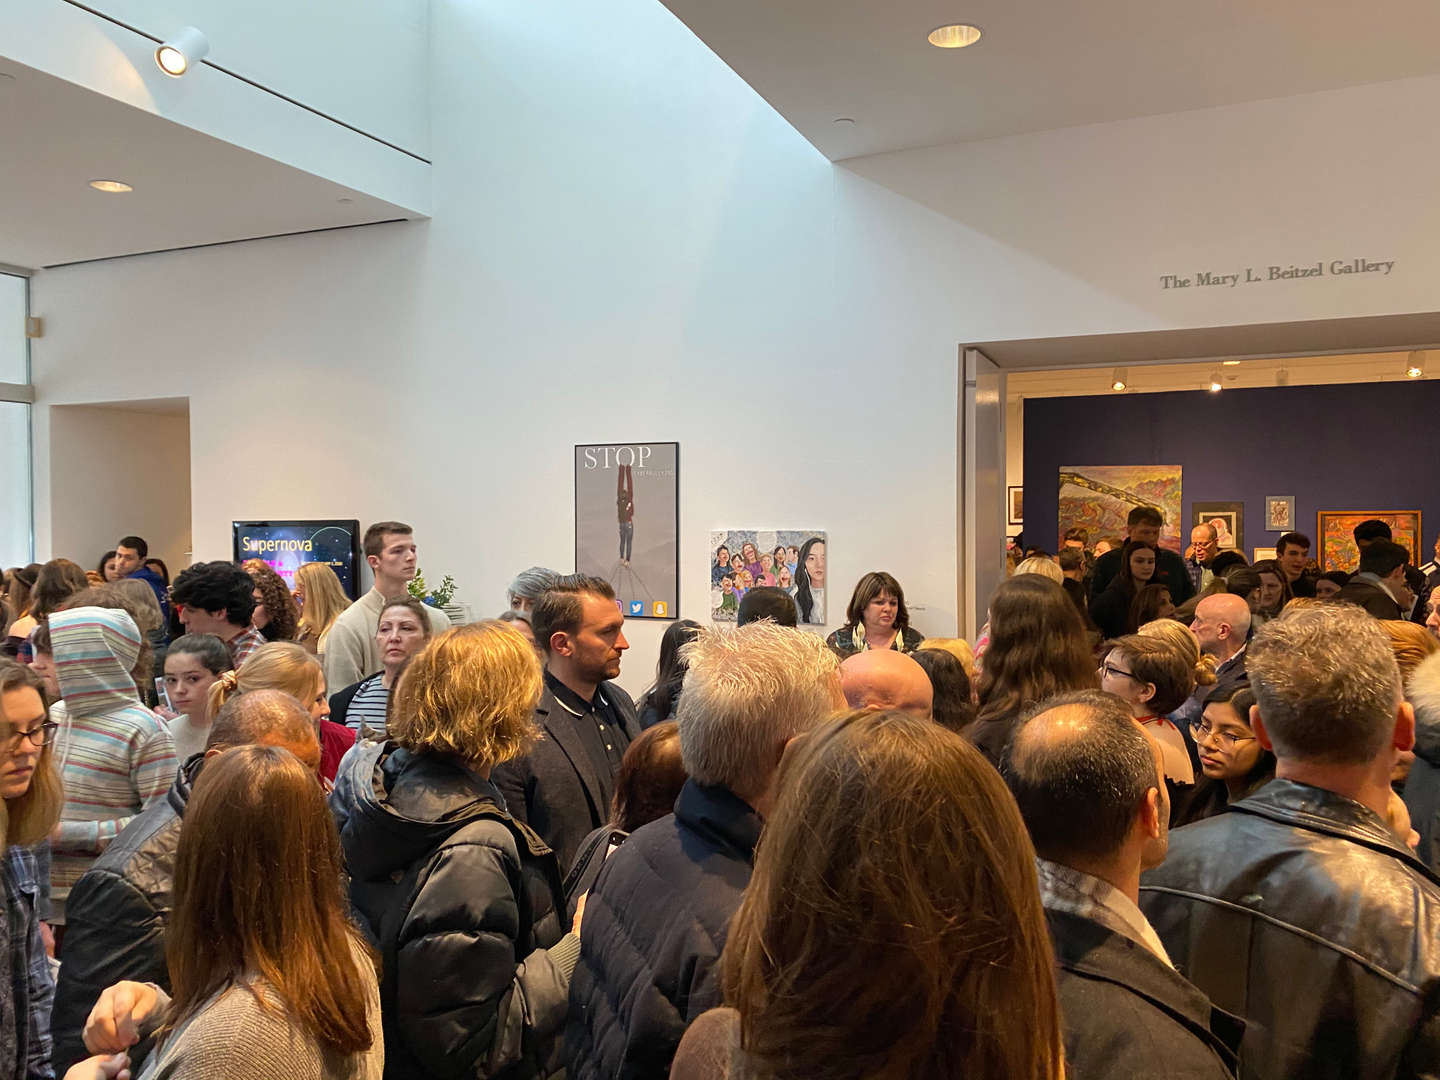 Crowd of art enthusiasts in gallery